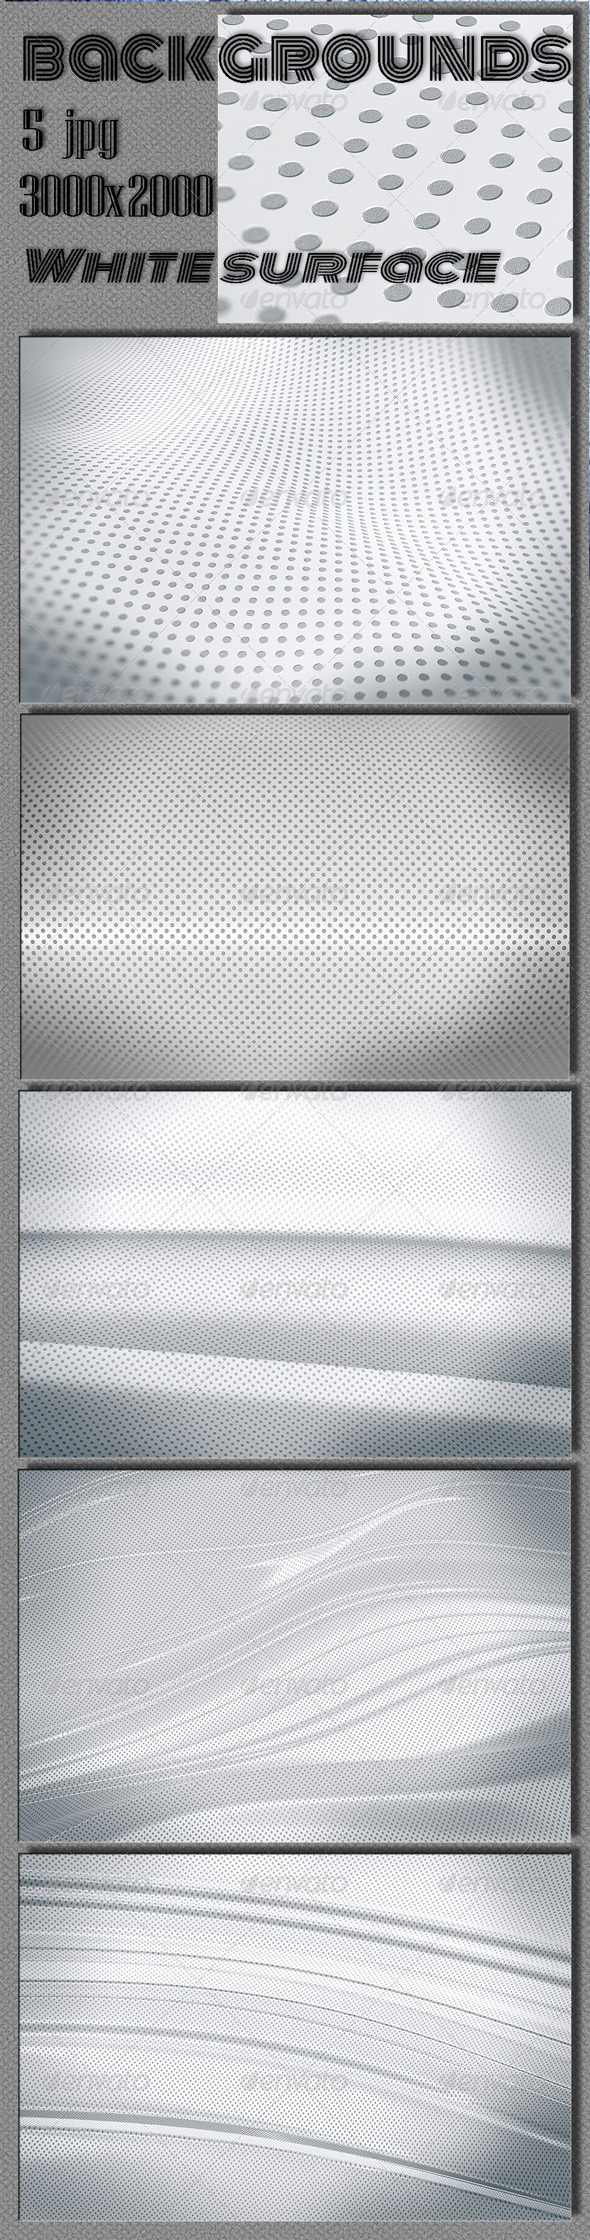 Web White Surface Backgrounds - Abstract Backgrounds